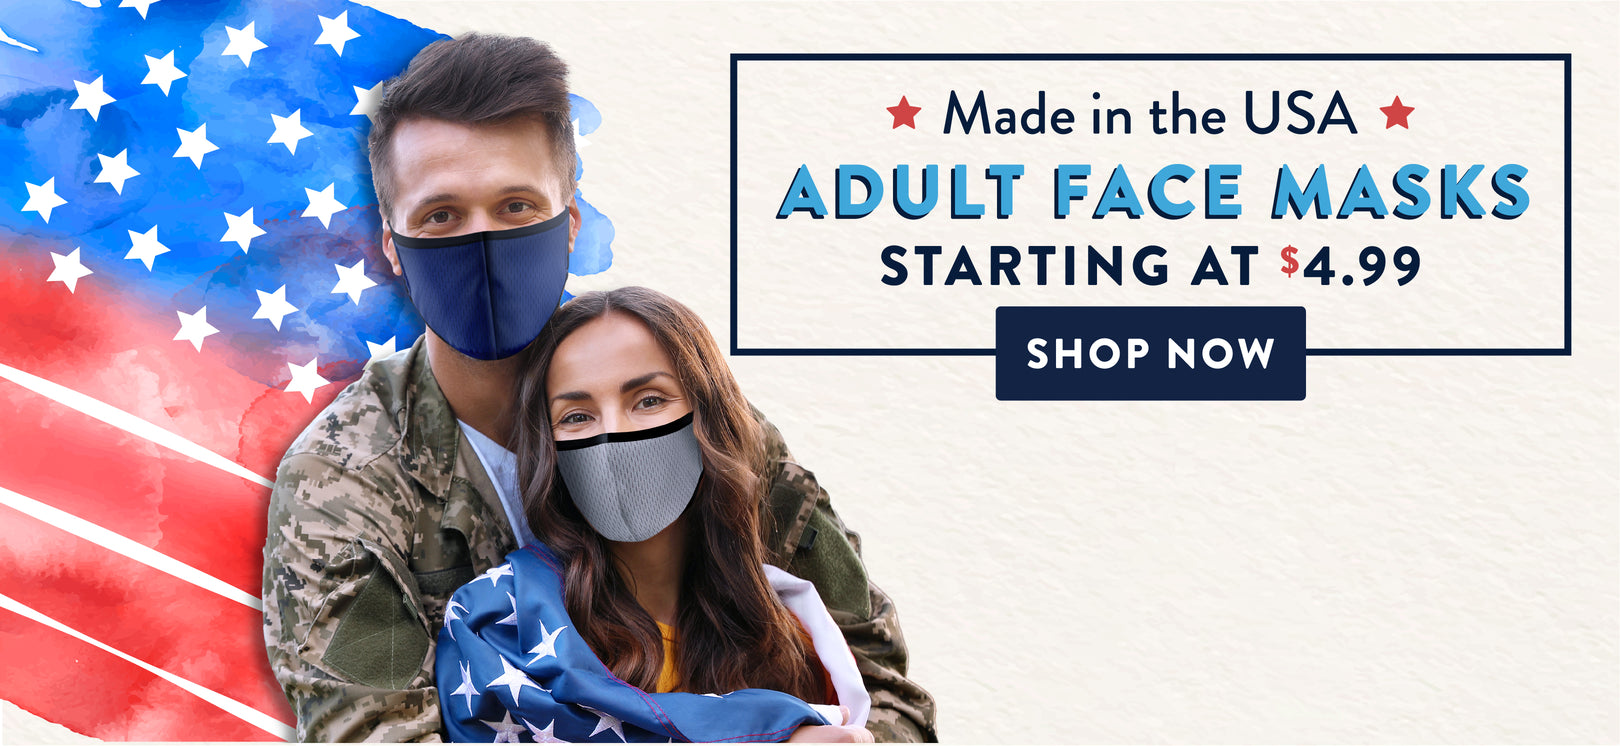 Banner for adult face masks made in usa